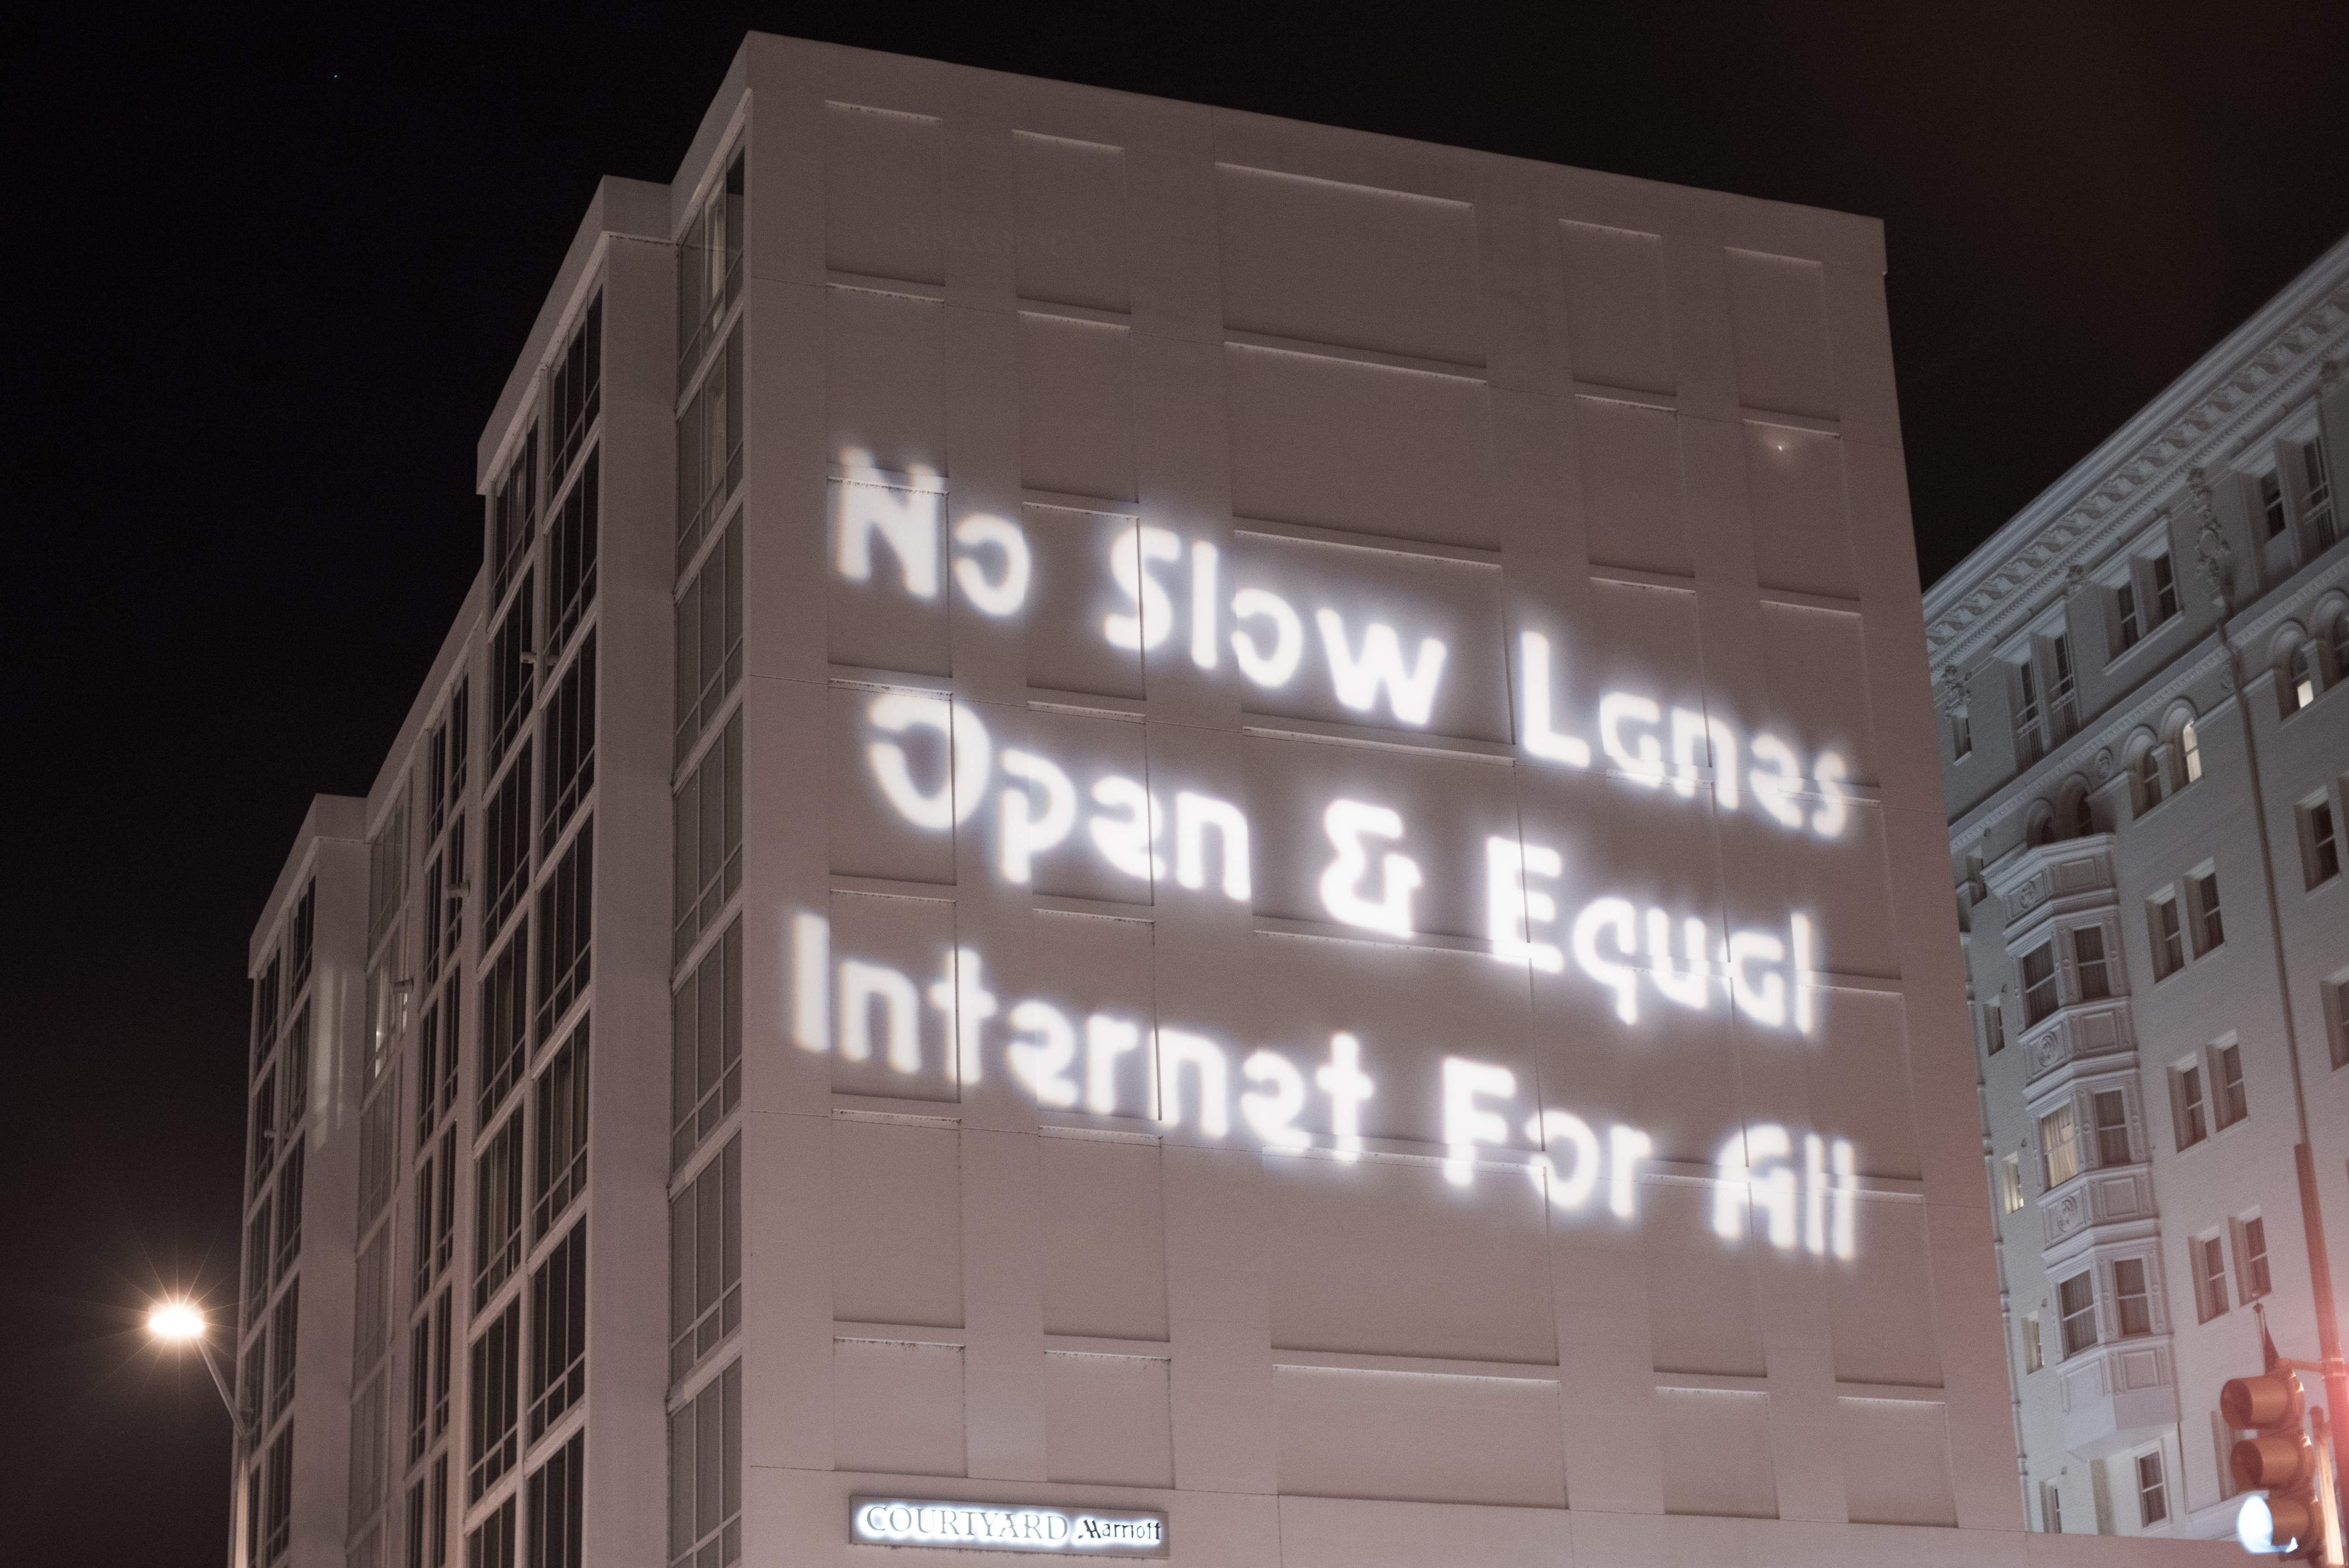 A sign is projected onto a building during a demonstration supporting net neutrality in a protest against a plan by Federal Communications Commission (FCC) head Ajit Pai, on December 7, 2017 in Washington. Demonstrations in support of net neutrality are planned nationwide at hundreds of Verizon stores and other venues. / AFP PHOTO / mari matsuri